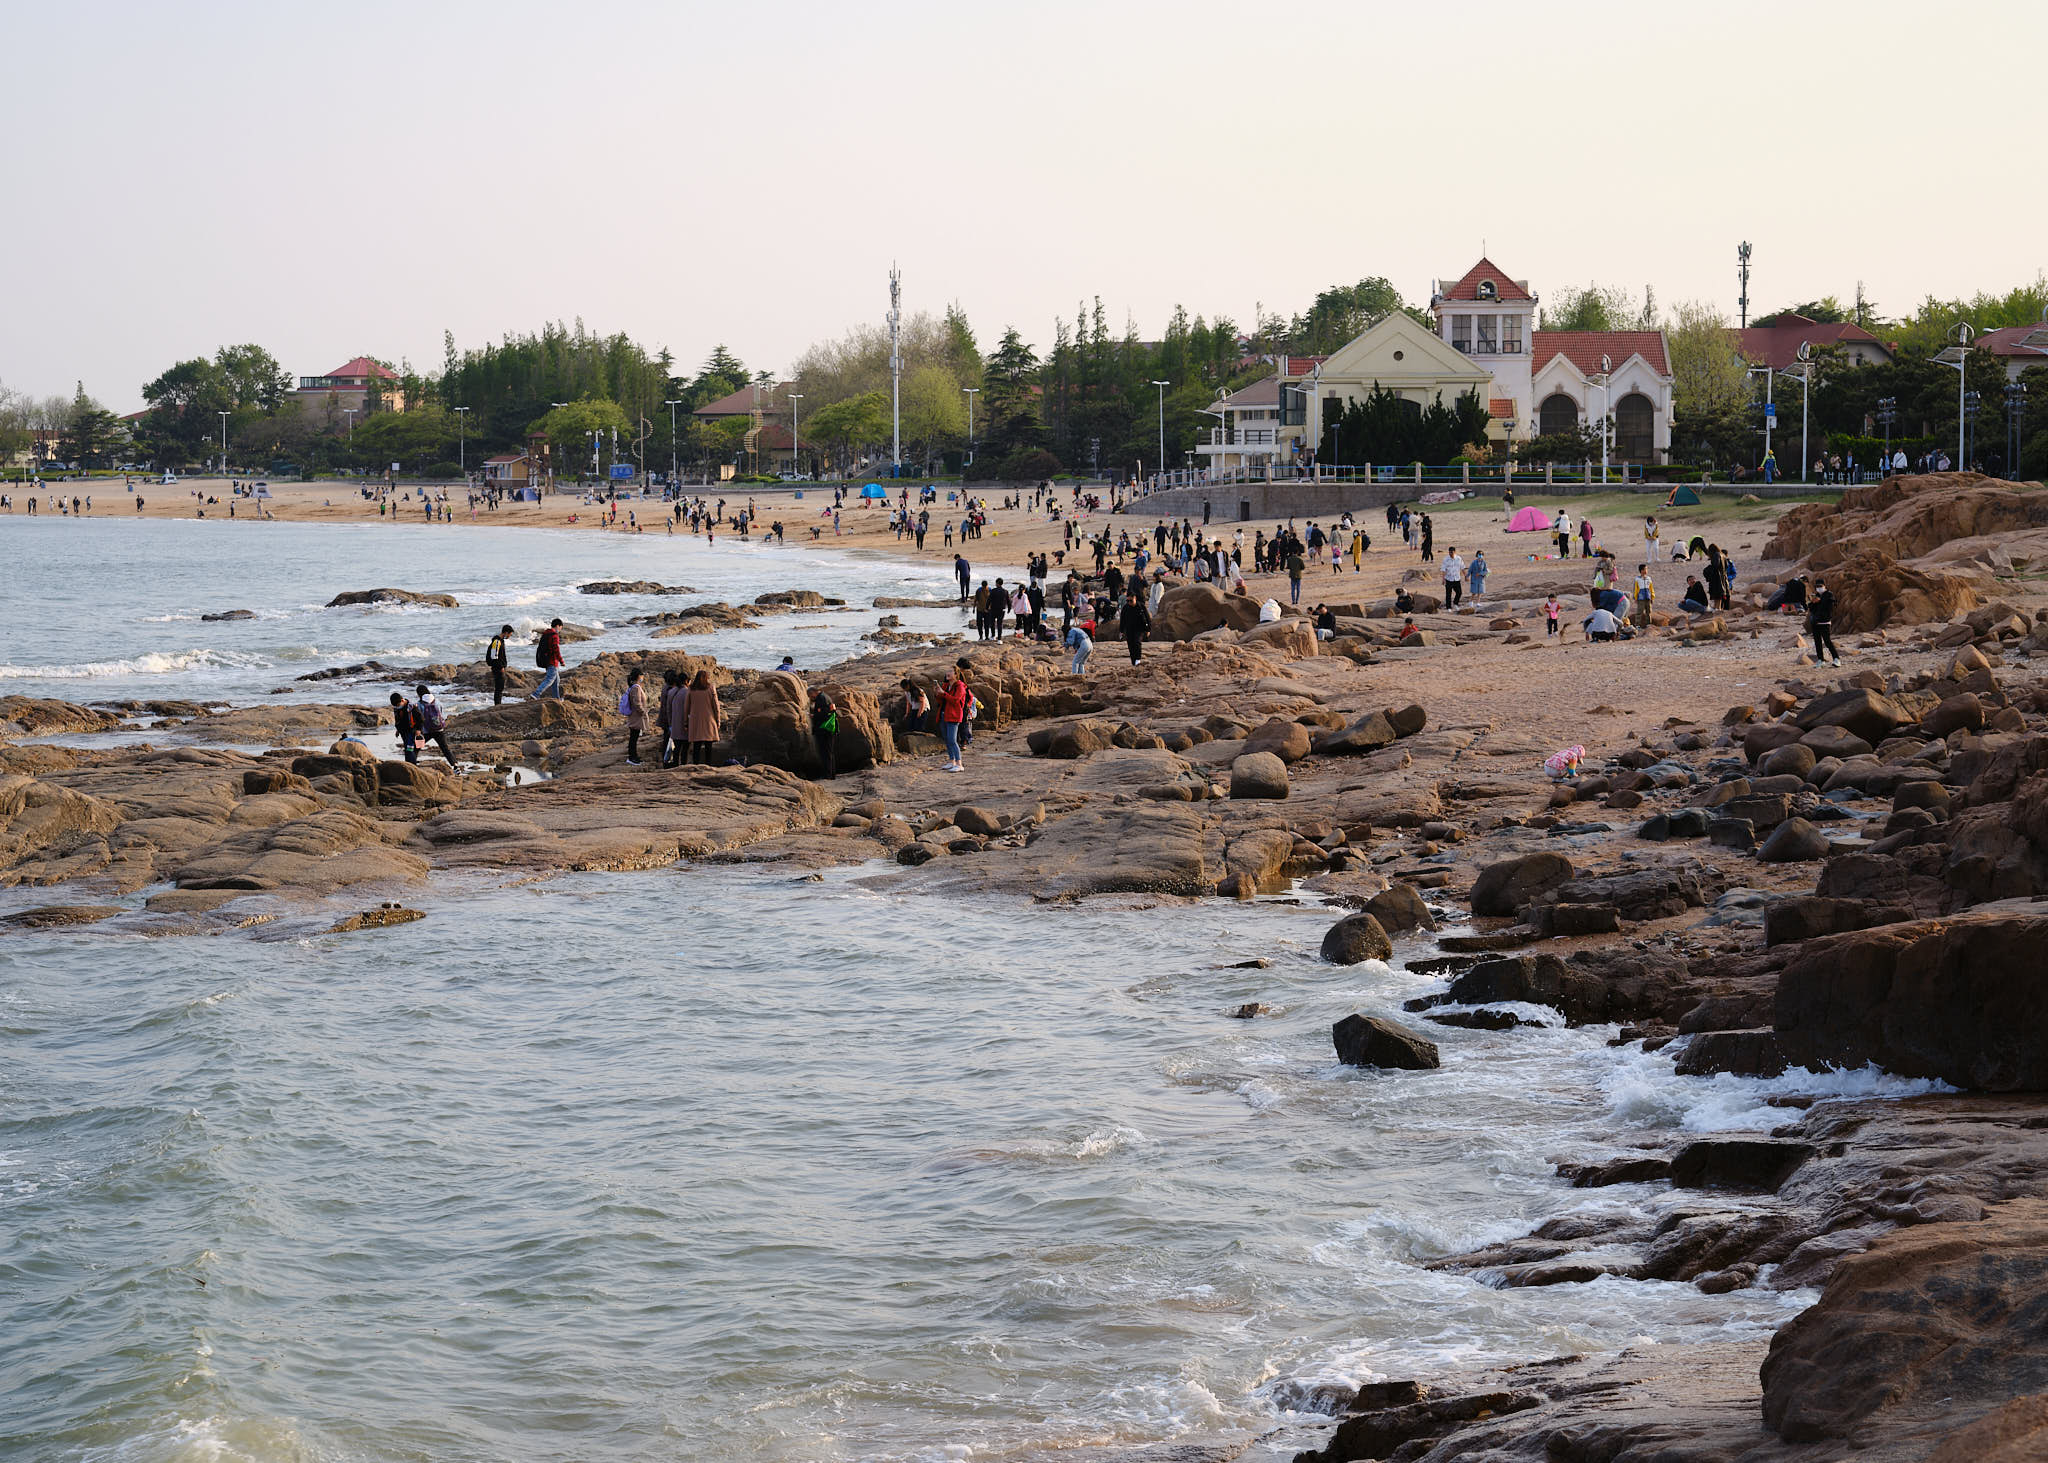 People hanging out at sunset at the beach in Qingdao